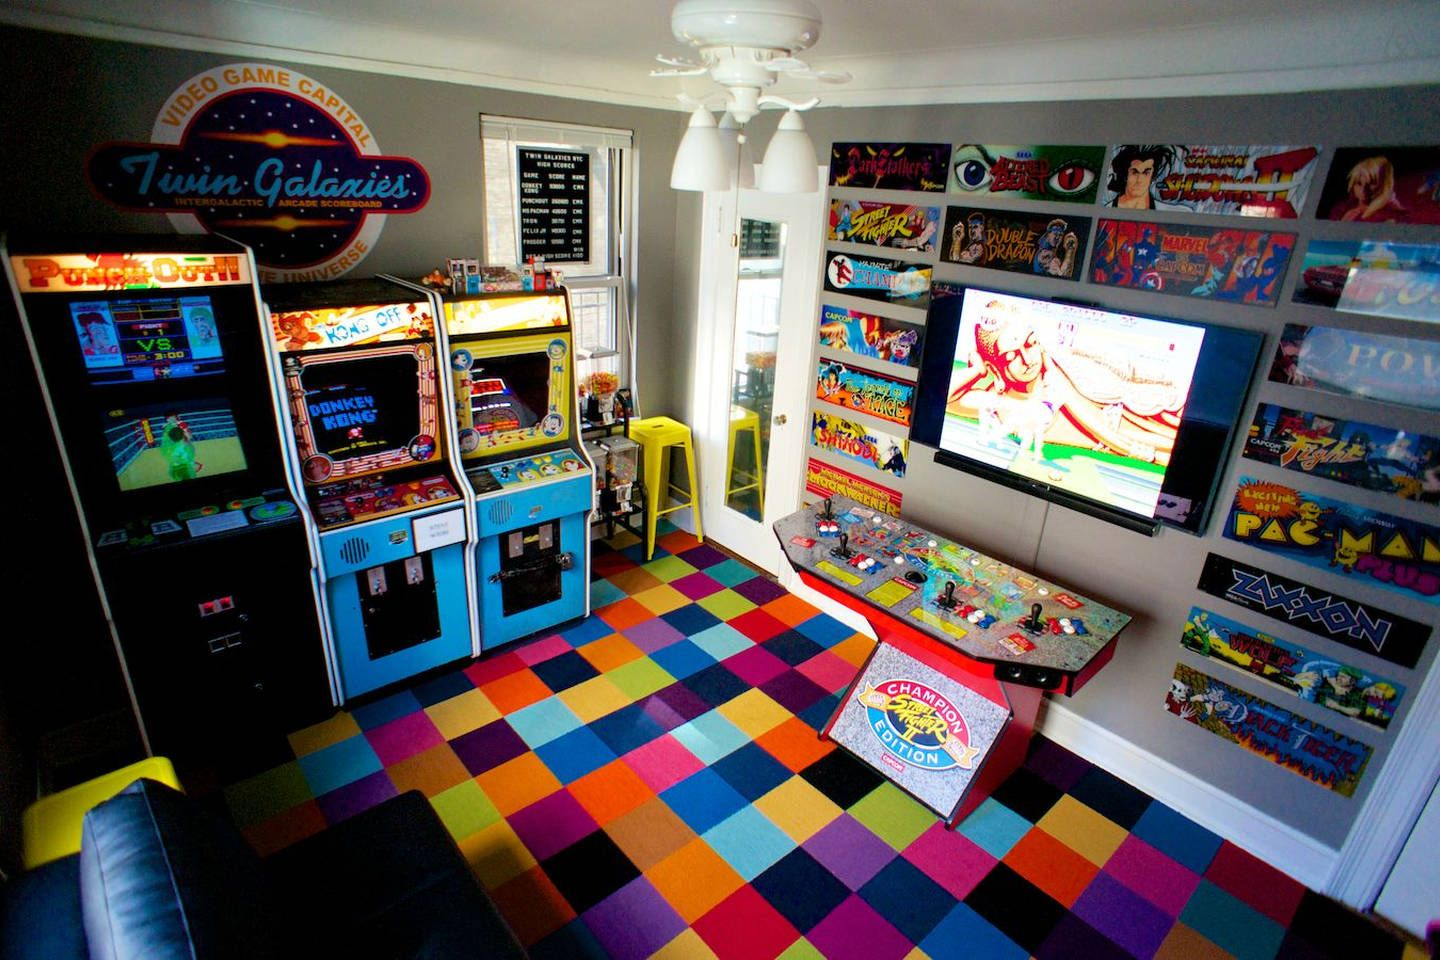 World Famous Bedroom Arcade Video Game Rooms Game Room Design